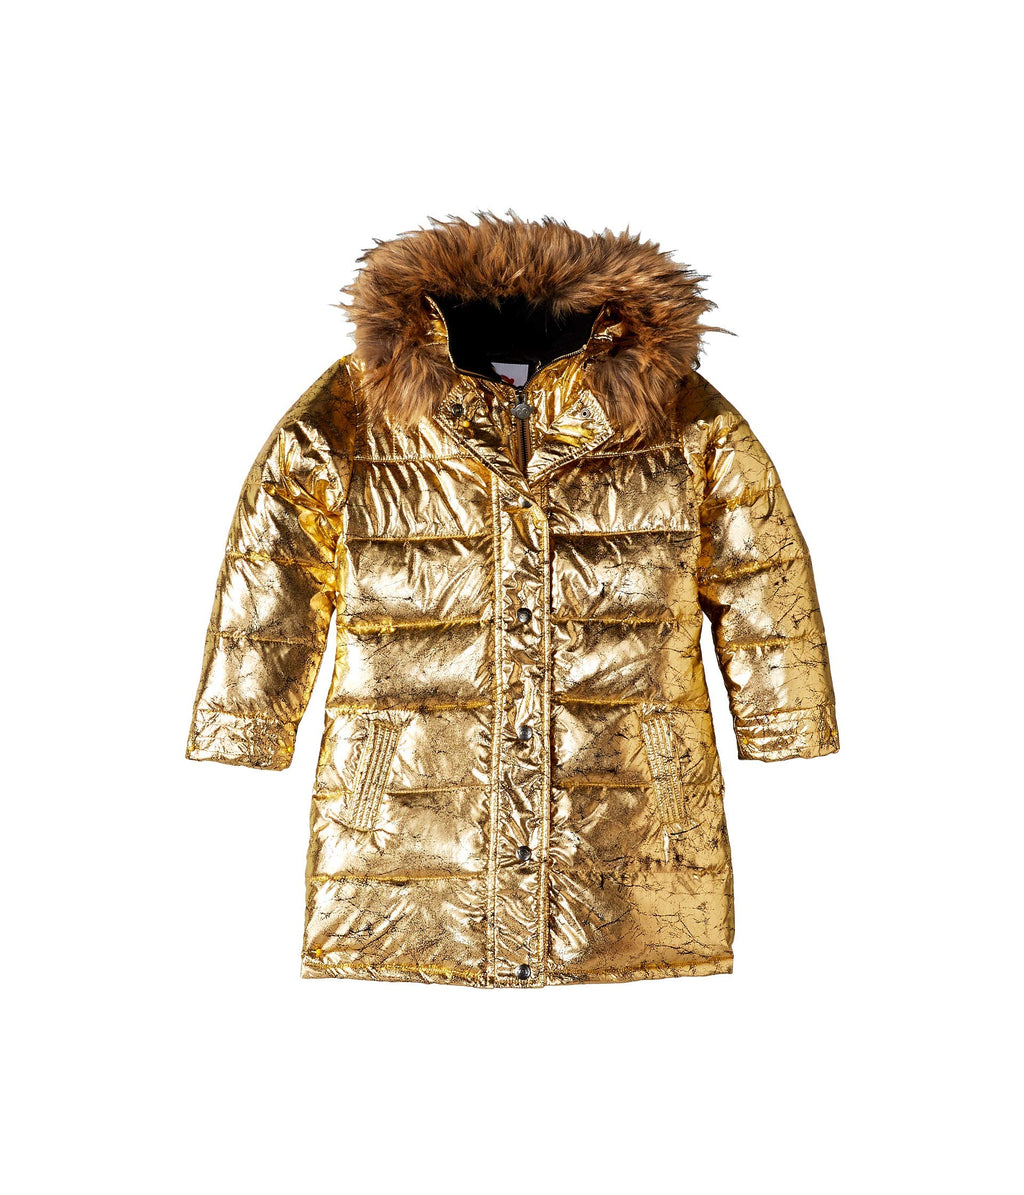 Antique Gold Long Down Coat | Unique Finds for Kids